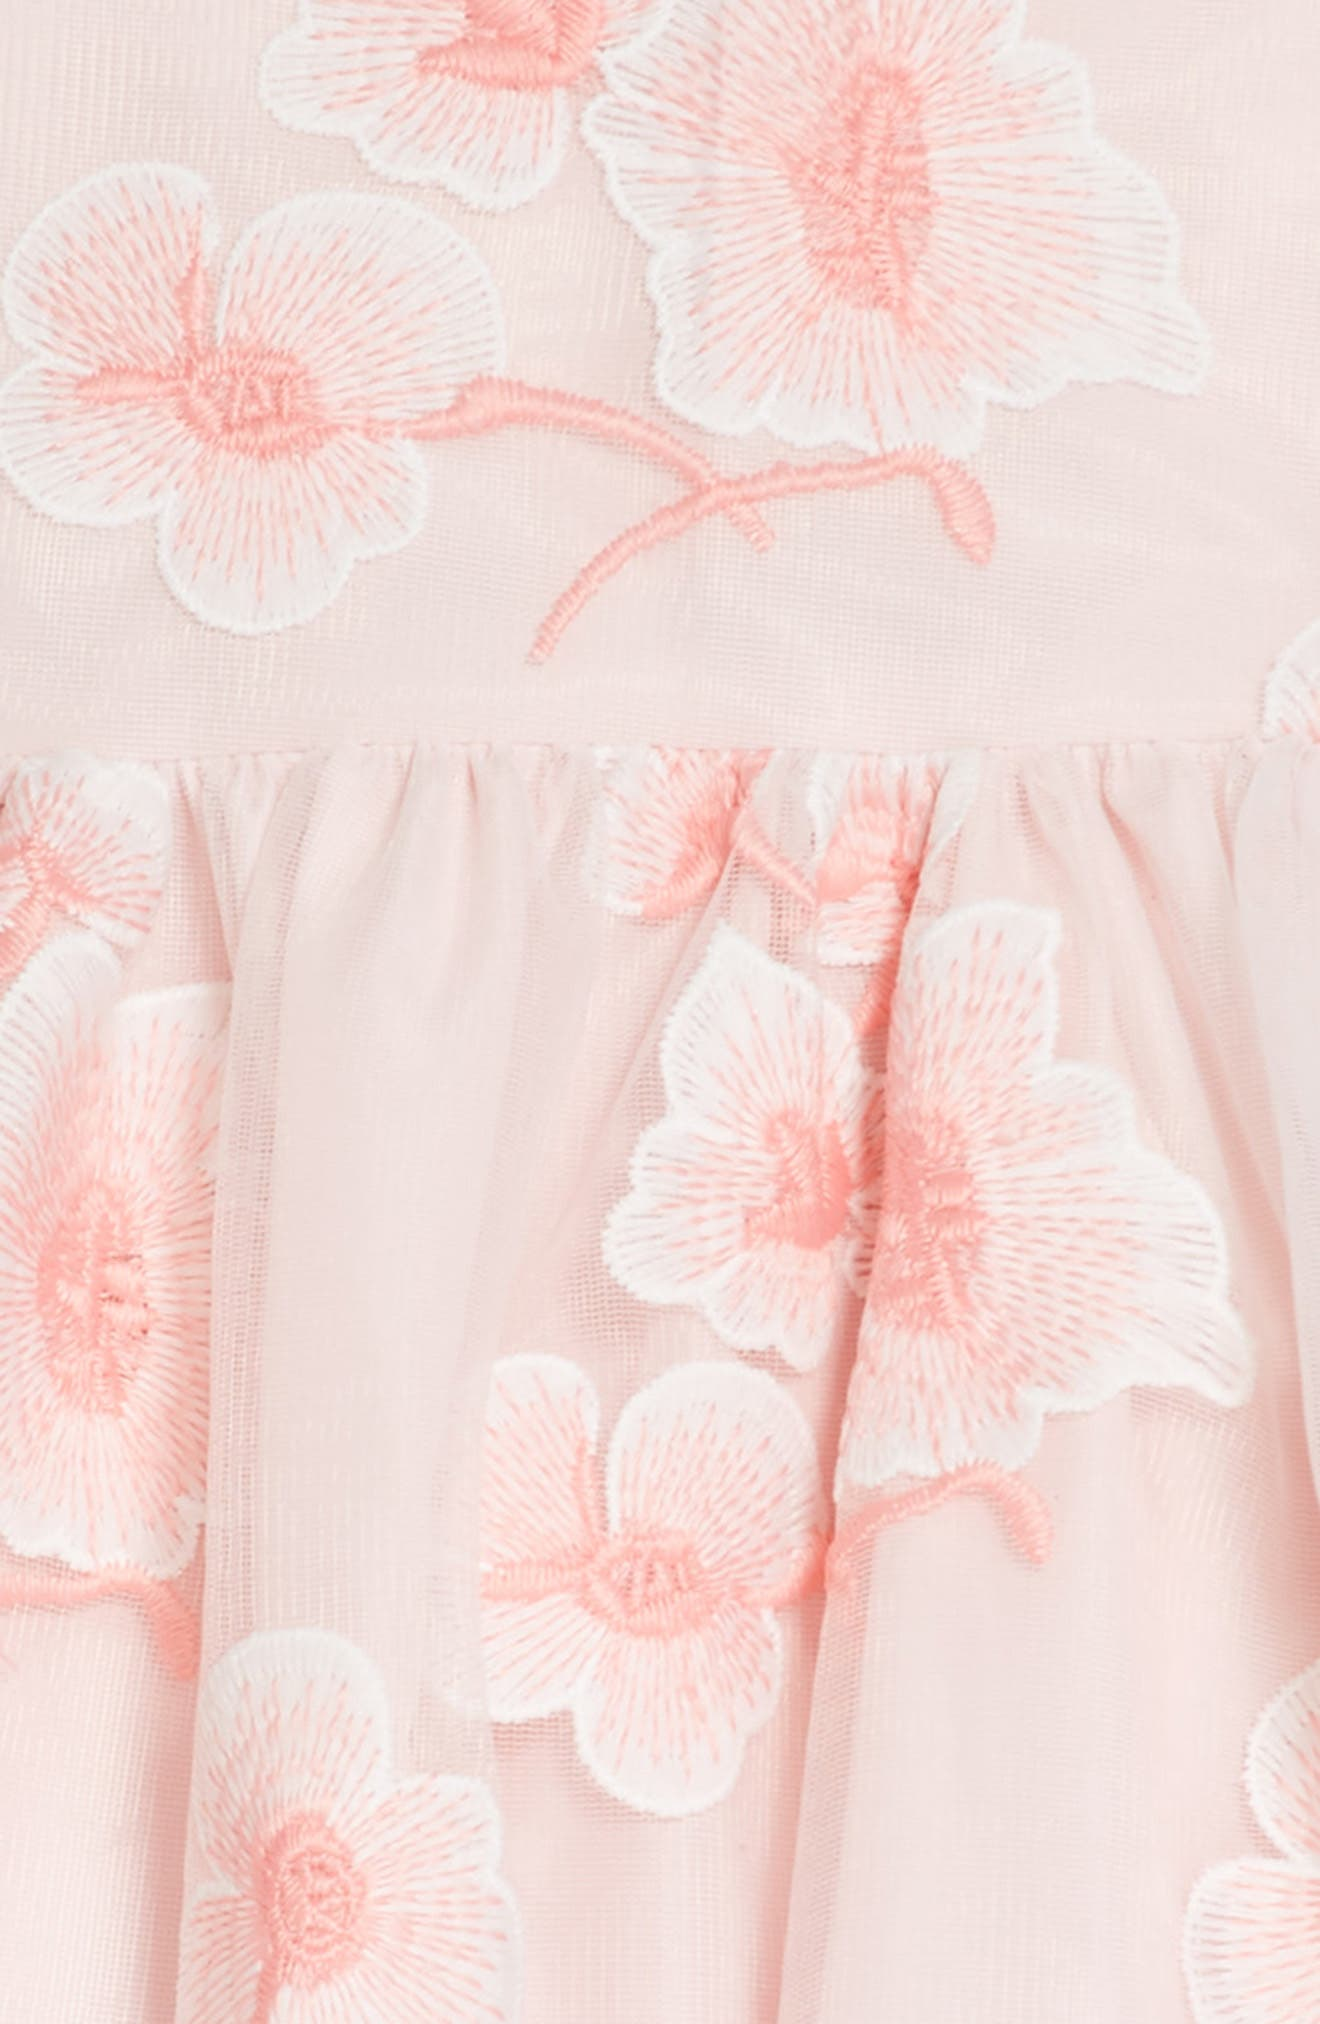 Floral Embroidered Dress,                             Alternate thumbnail 3, color,                             Pink